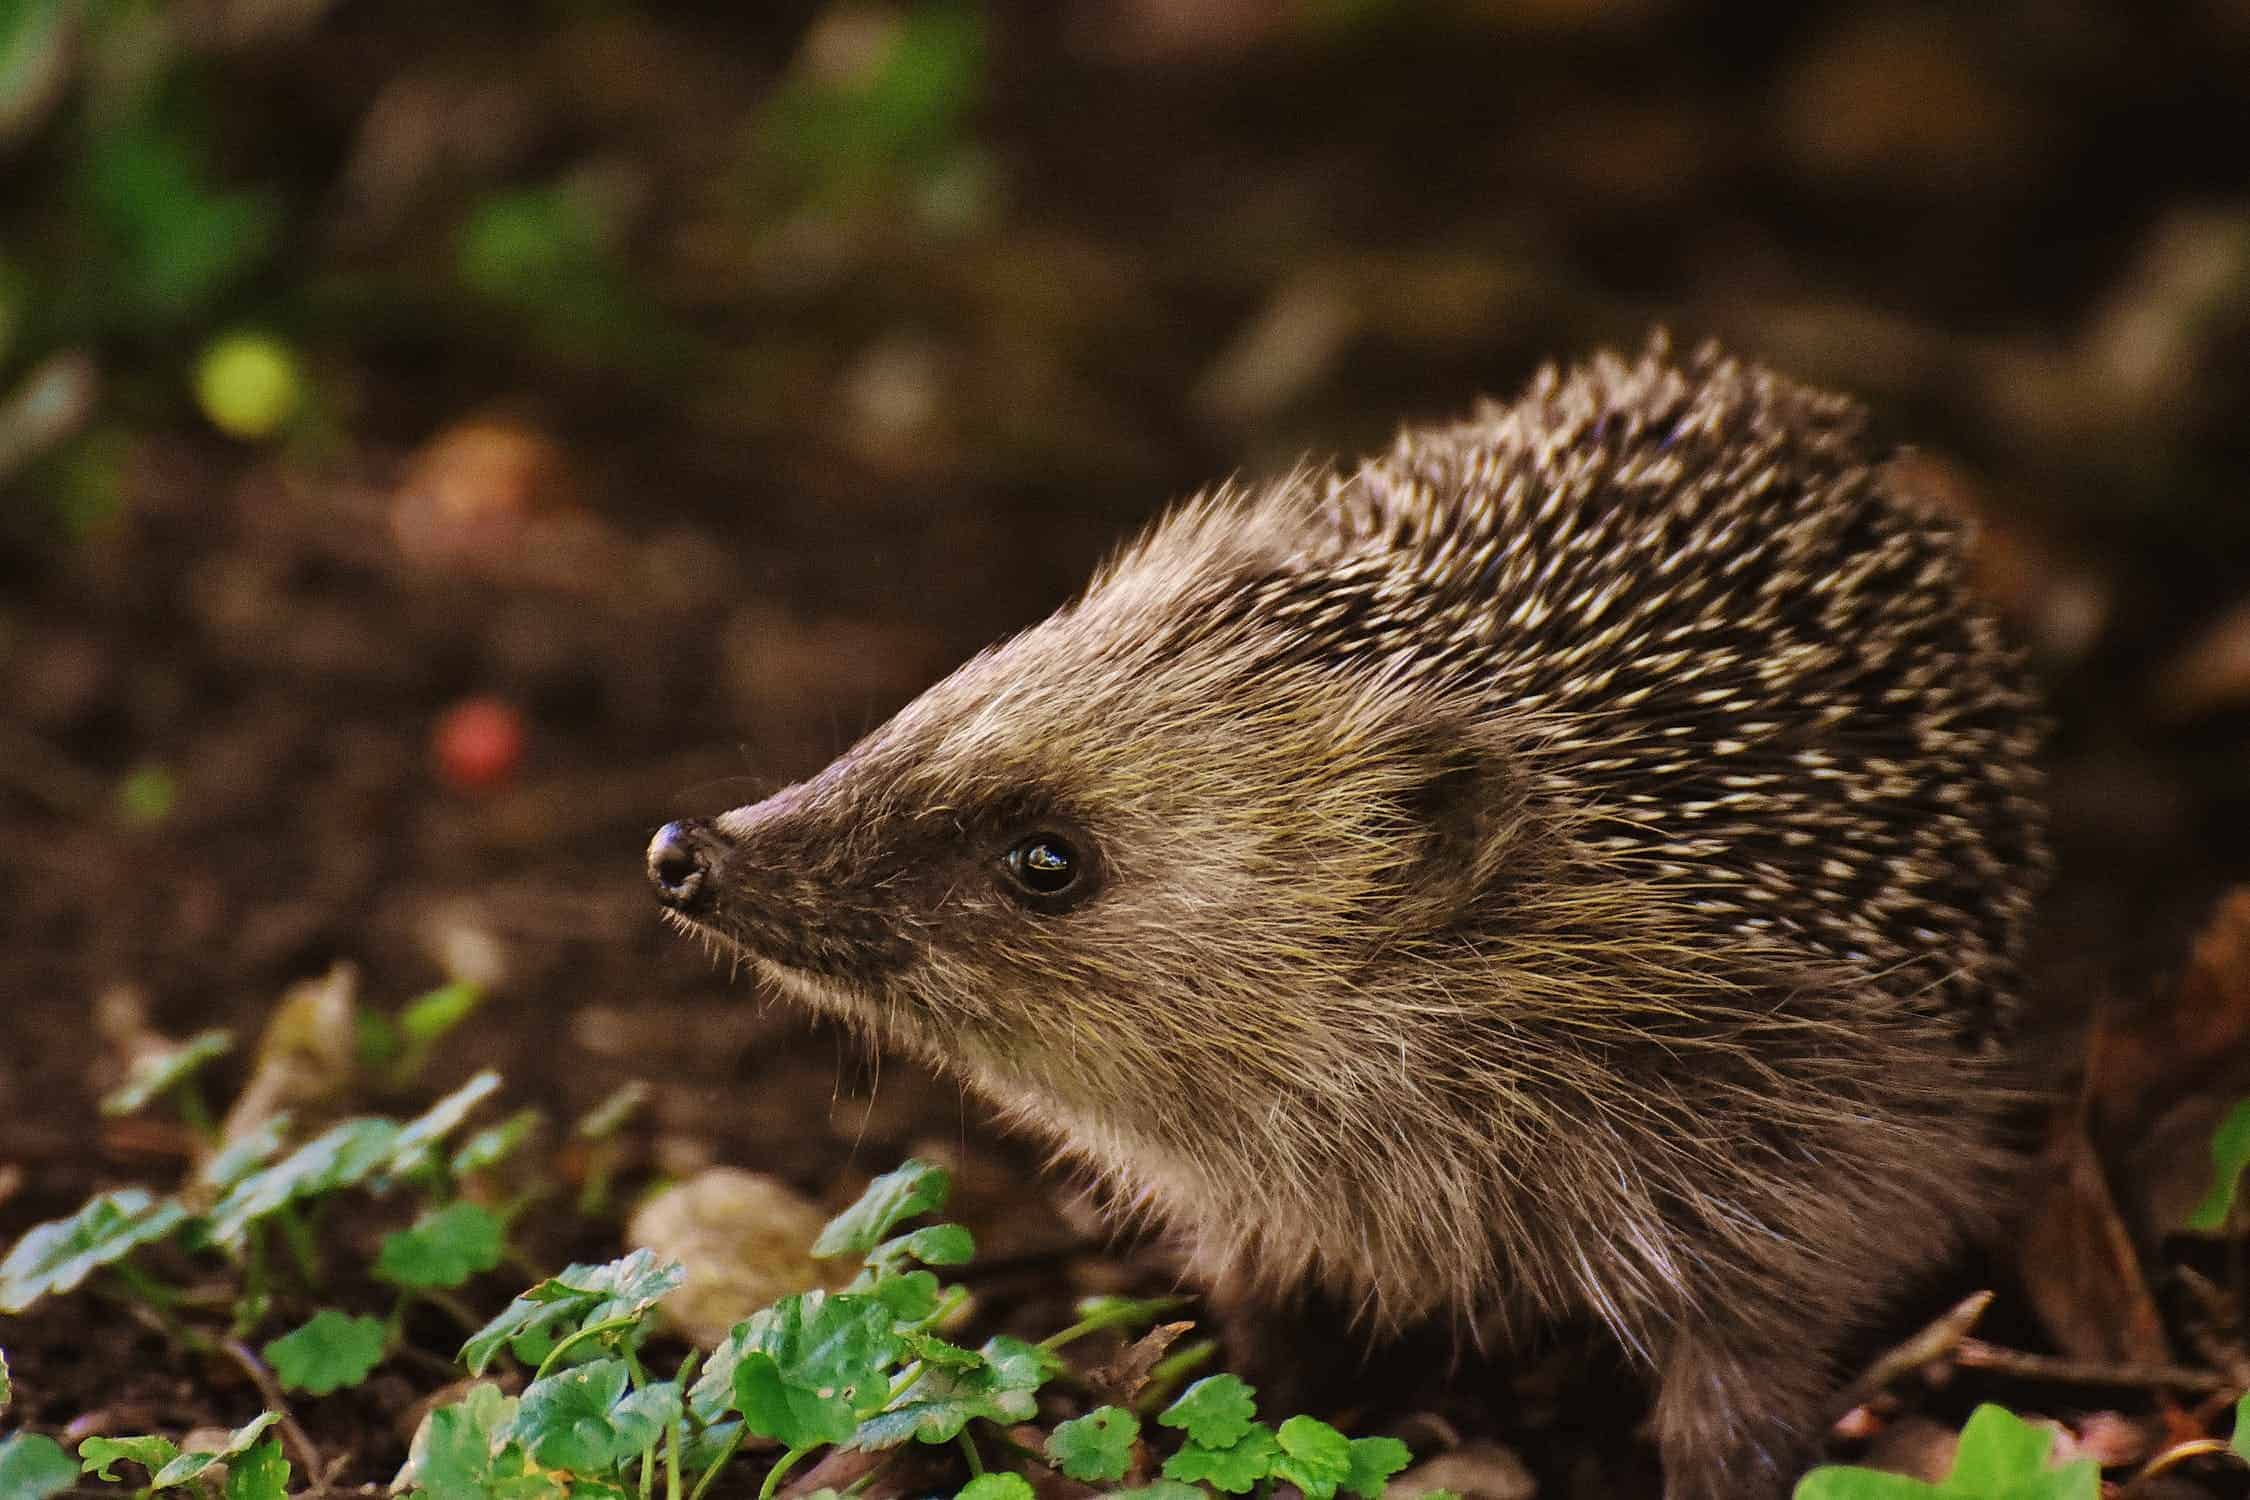 A hedgehog in the woods